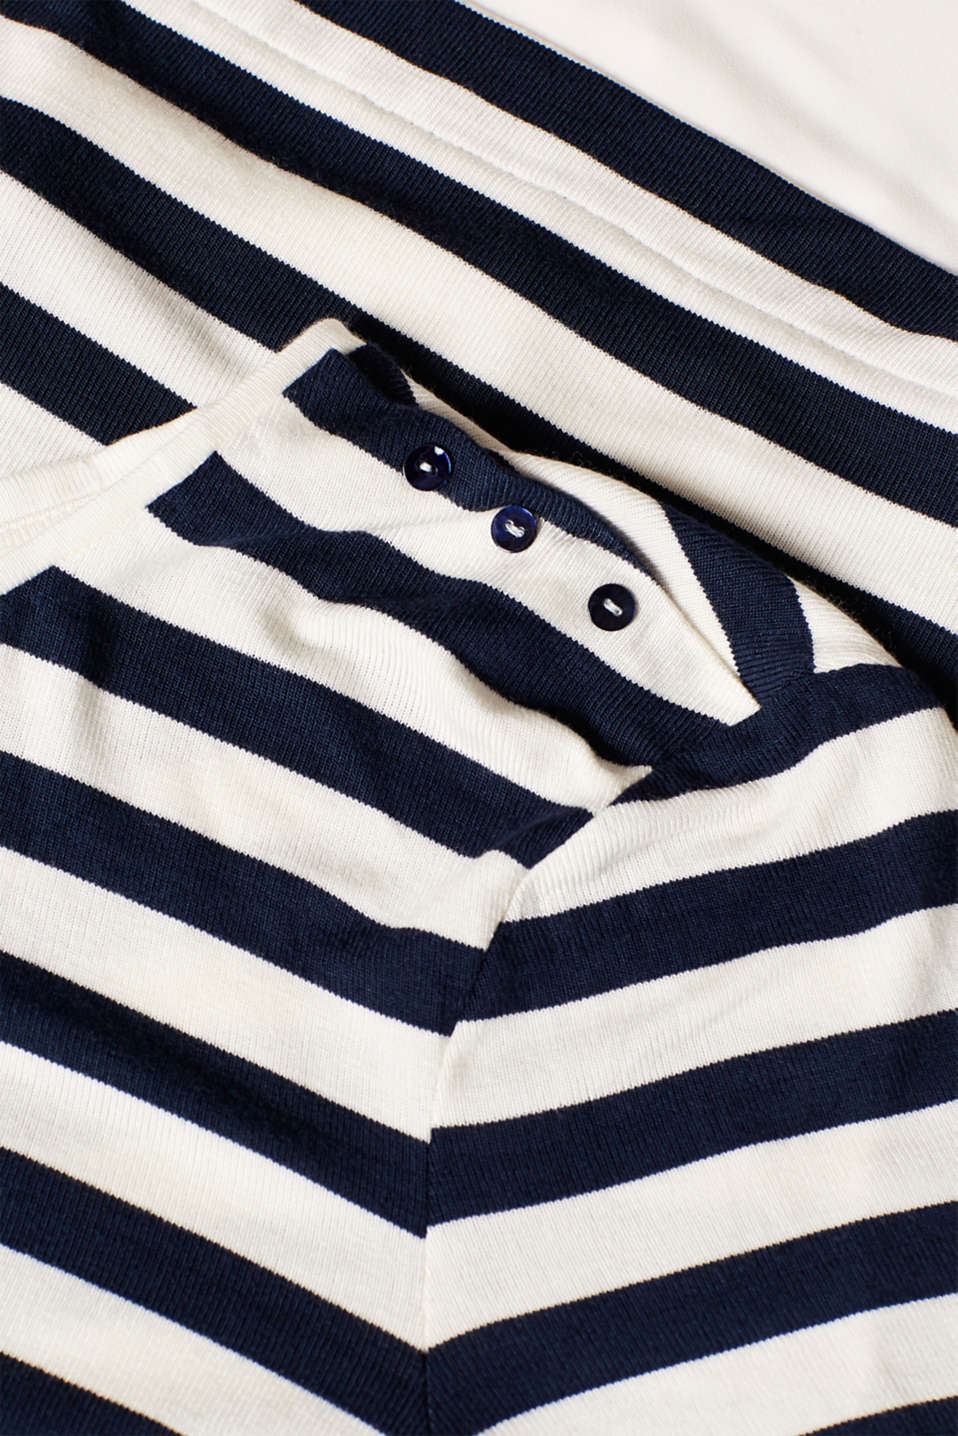 Striped stretch top in a layered look, NAVY, detail image number 4